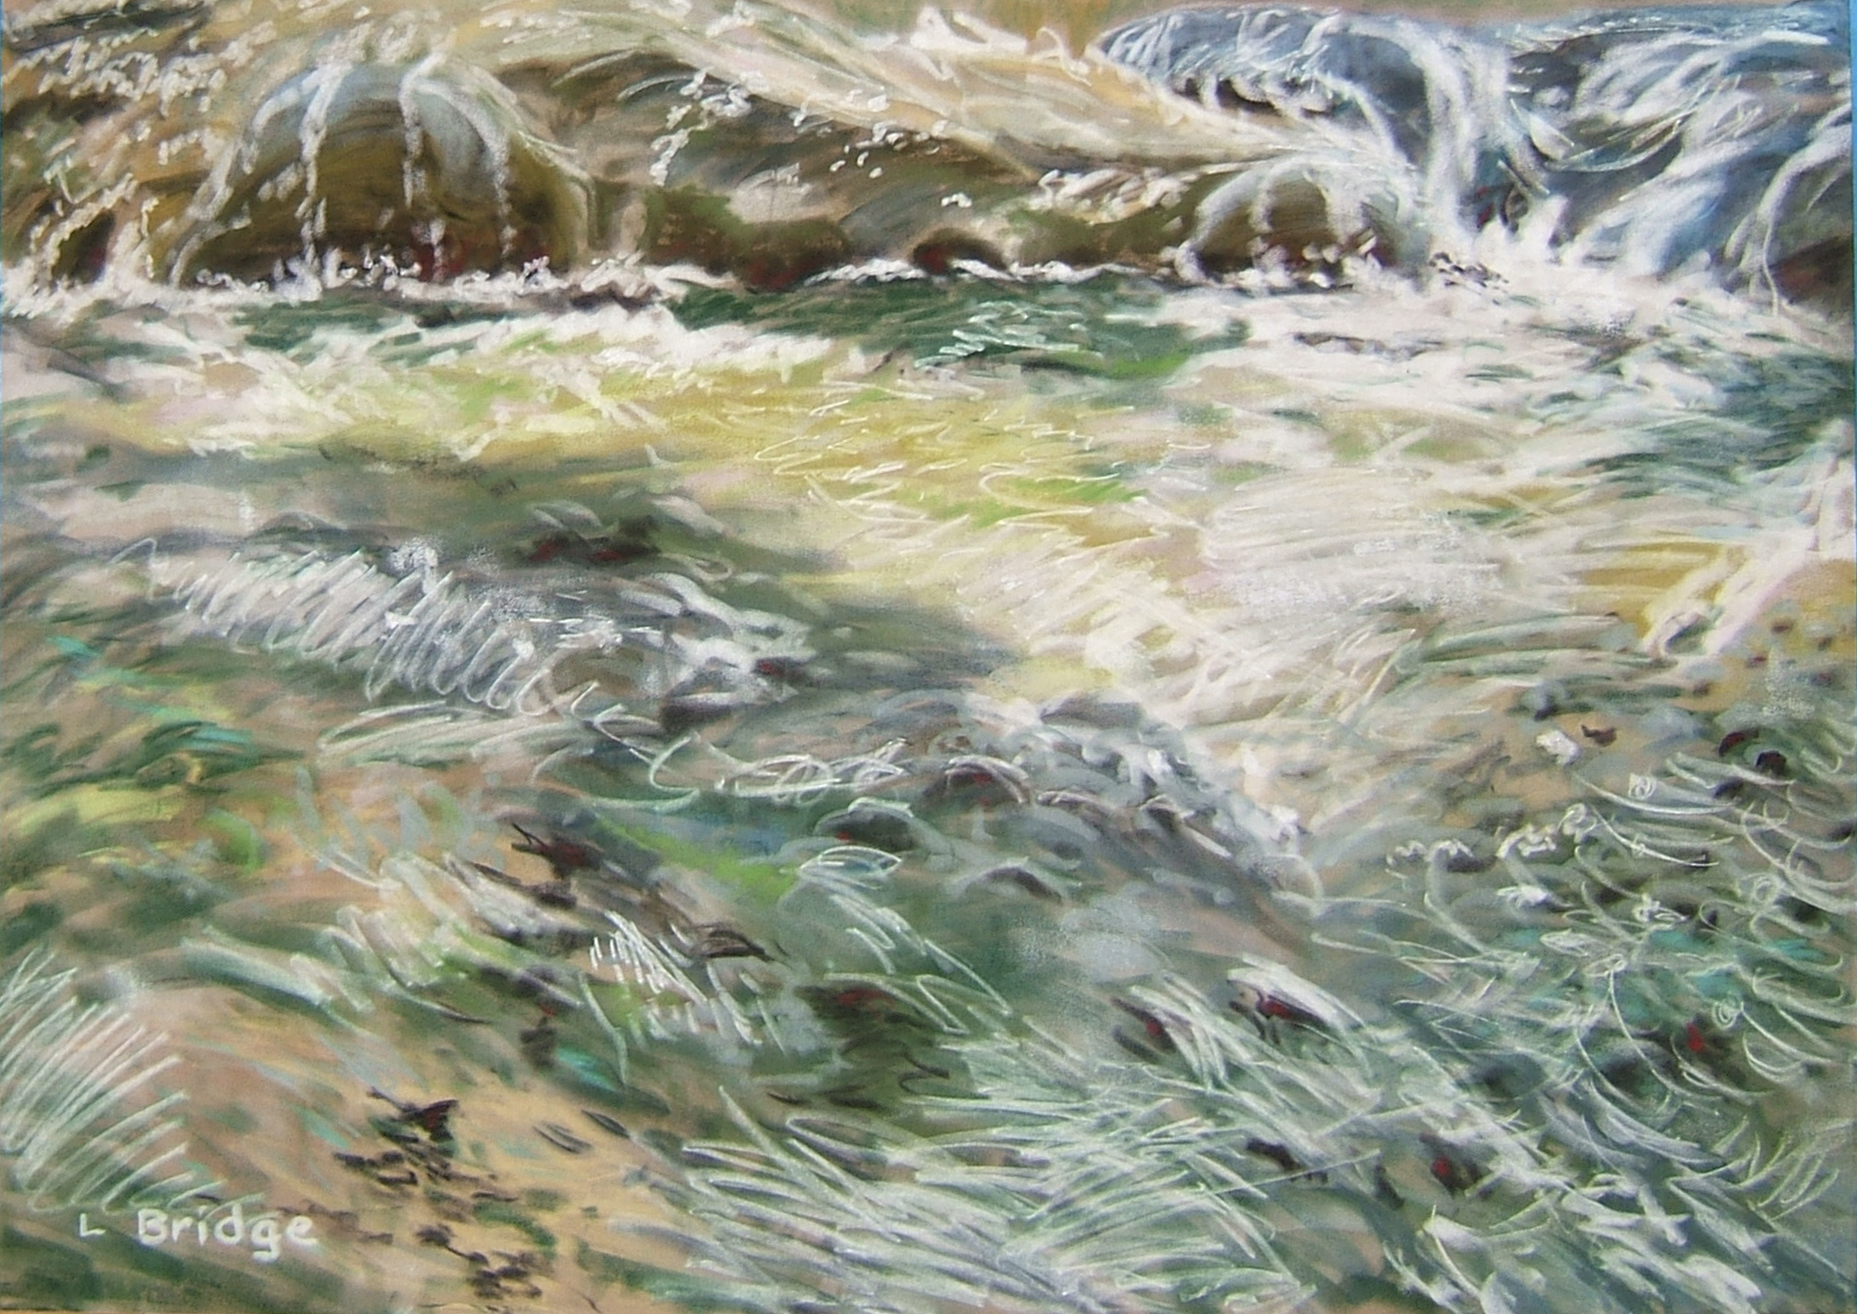 pastel painting of Texas creek by Lynn Bridge